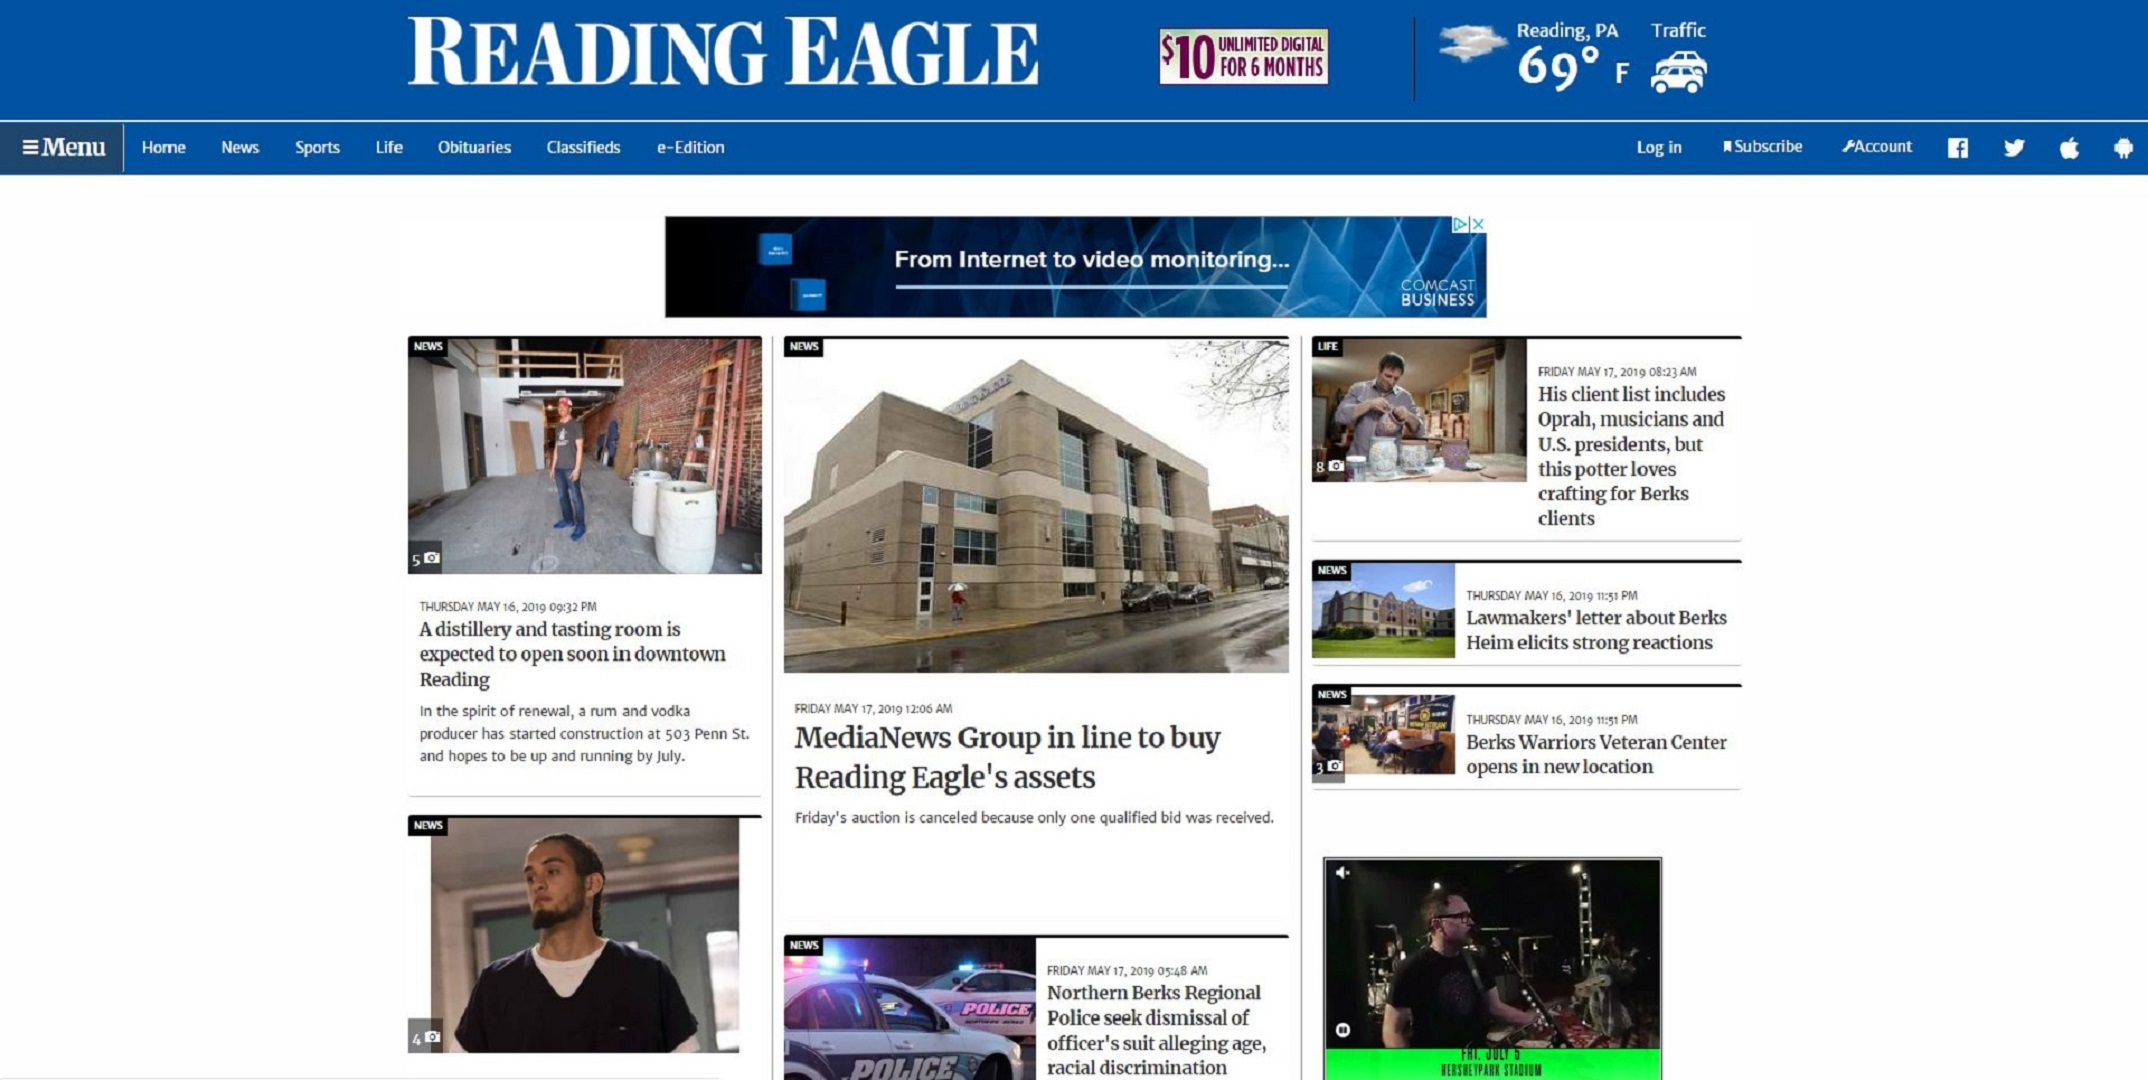 MediaNews Group stands as lone bidder to buy Reading Eagle